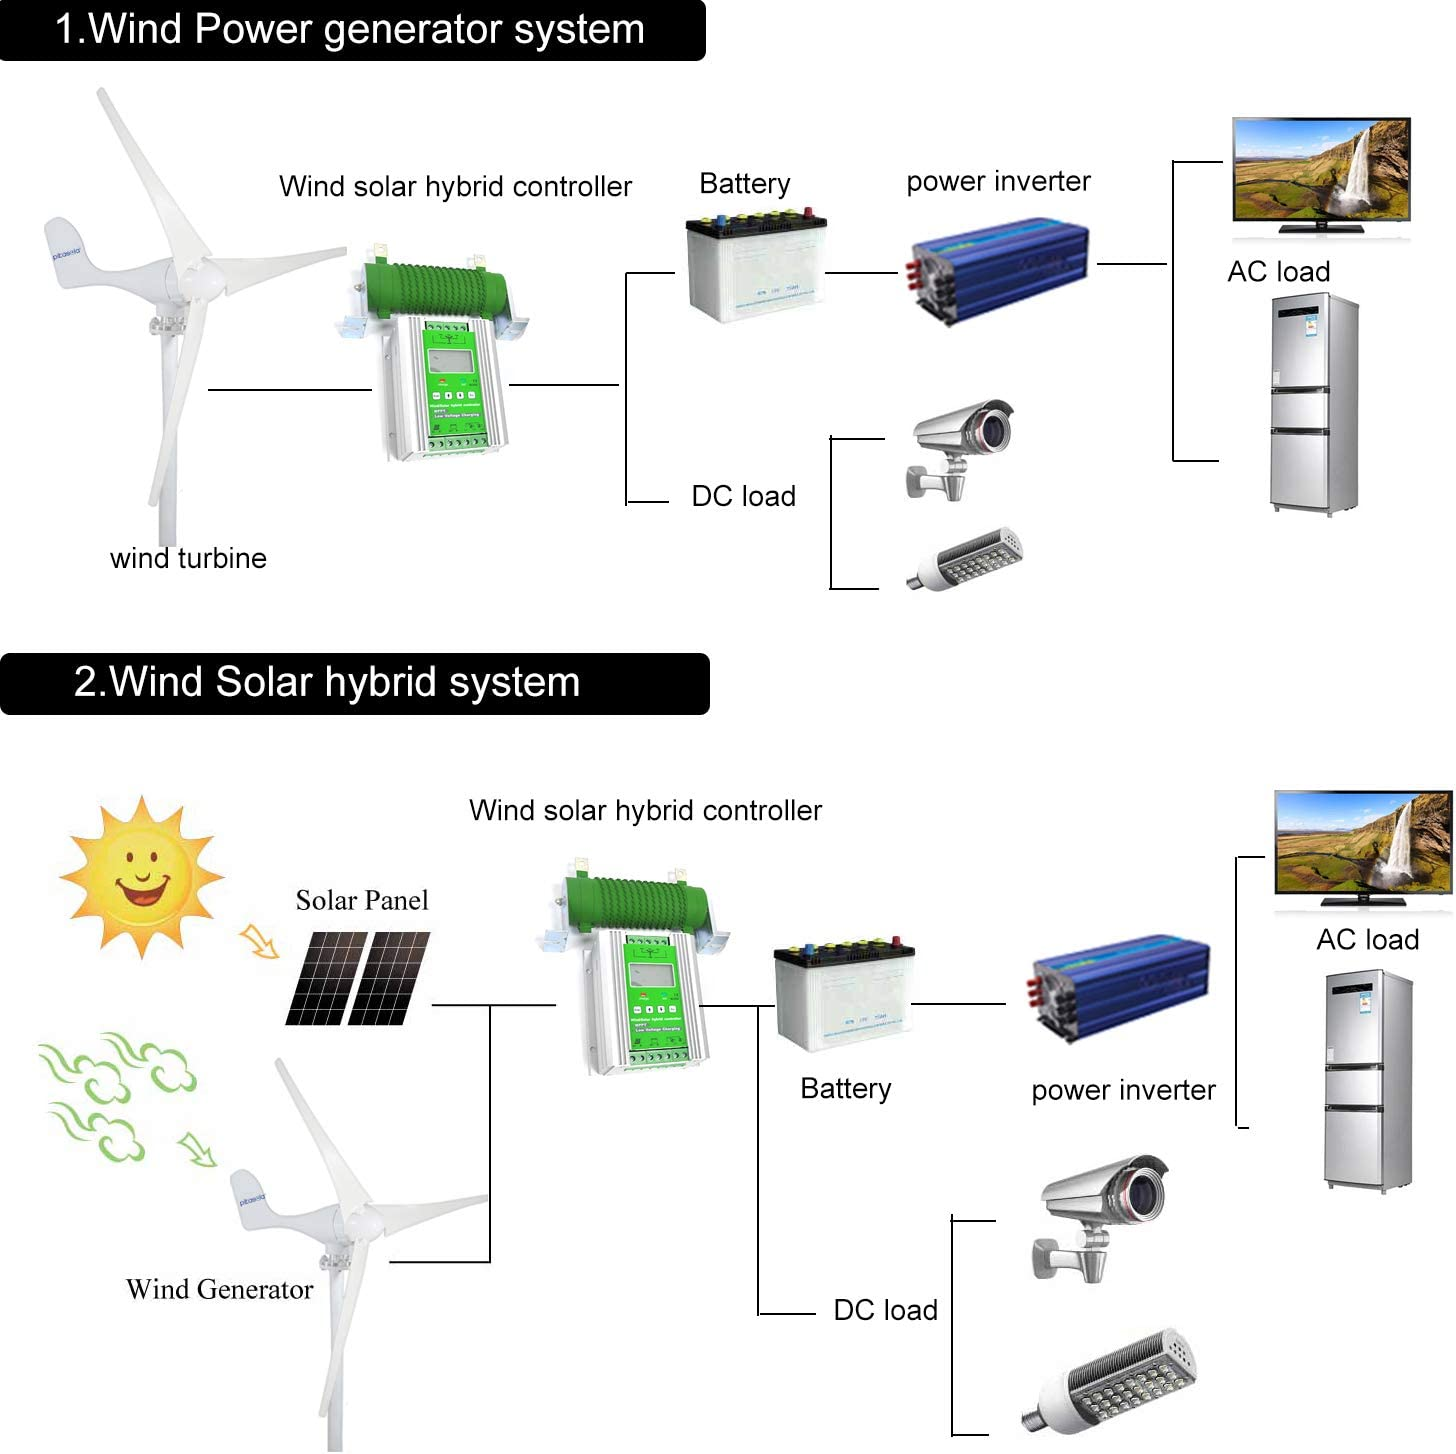 12V//24V battery charge boost float of max 800w wind turbine generator 600w solar panel home street light complementary controller PIKASOLA 1400W MPPT off grid adjust LCD hybrid wind solar controller